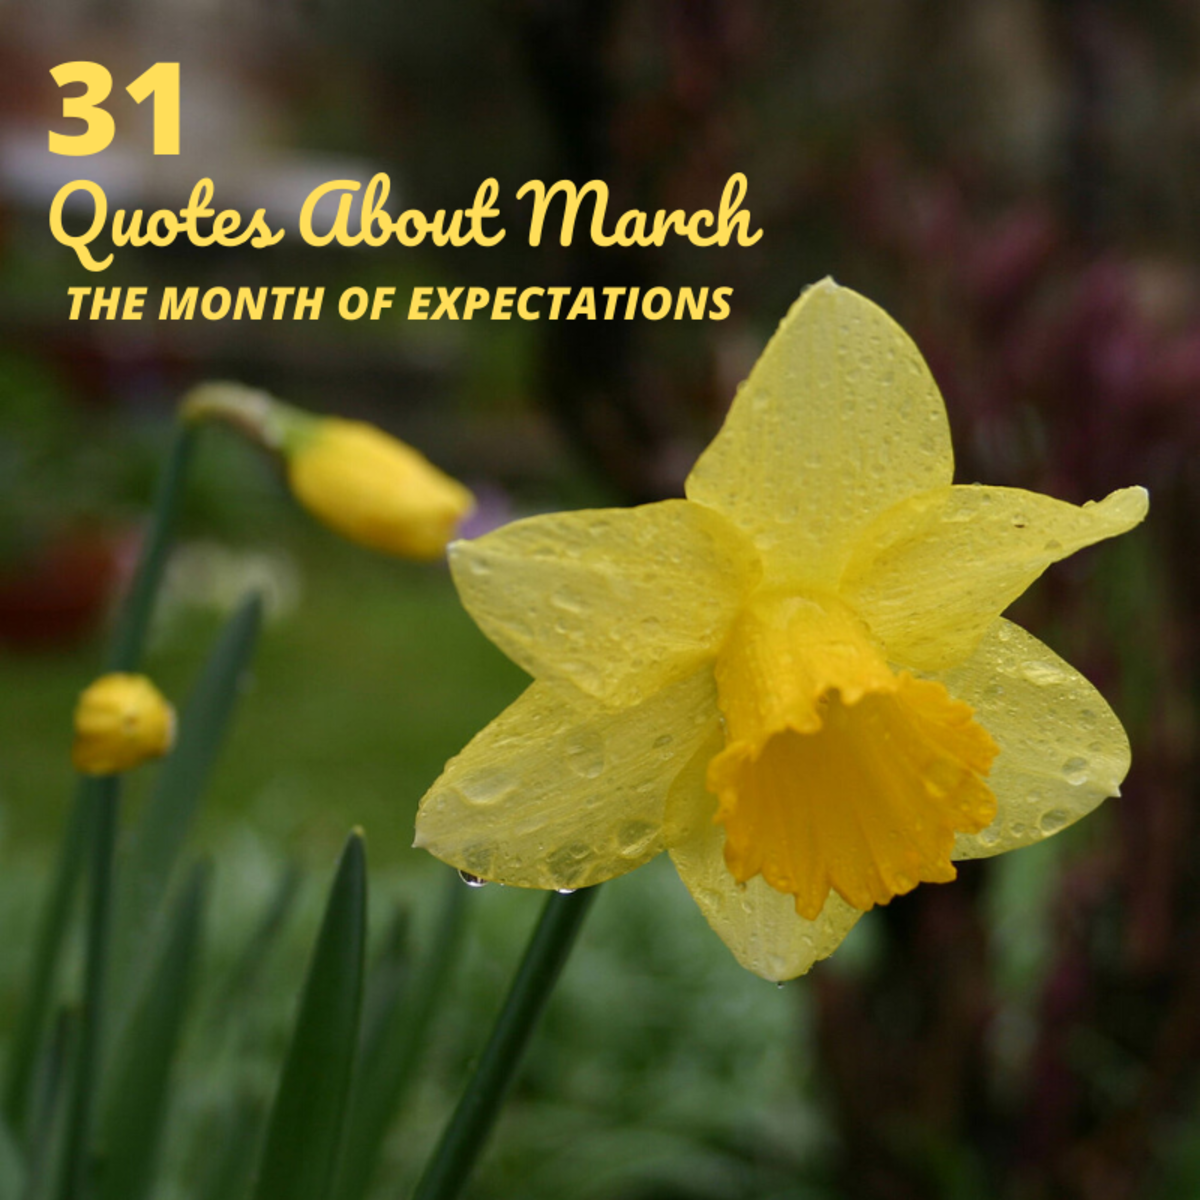 The daffodil is the official flower of the month of March.